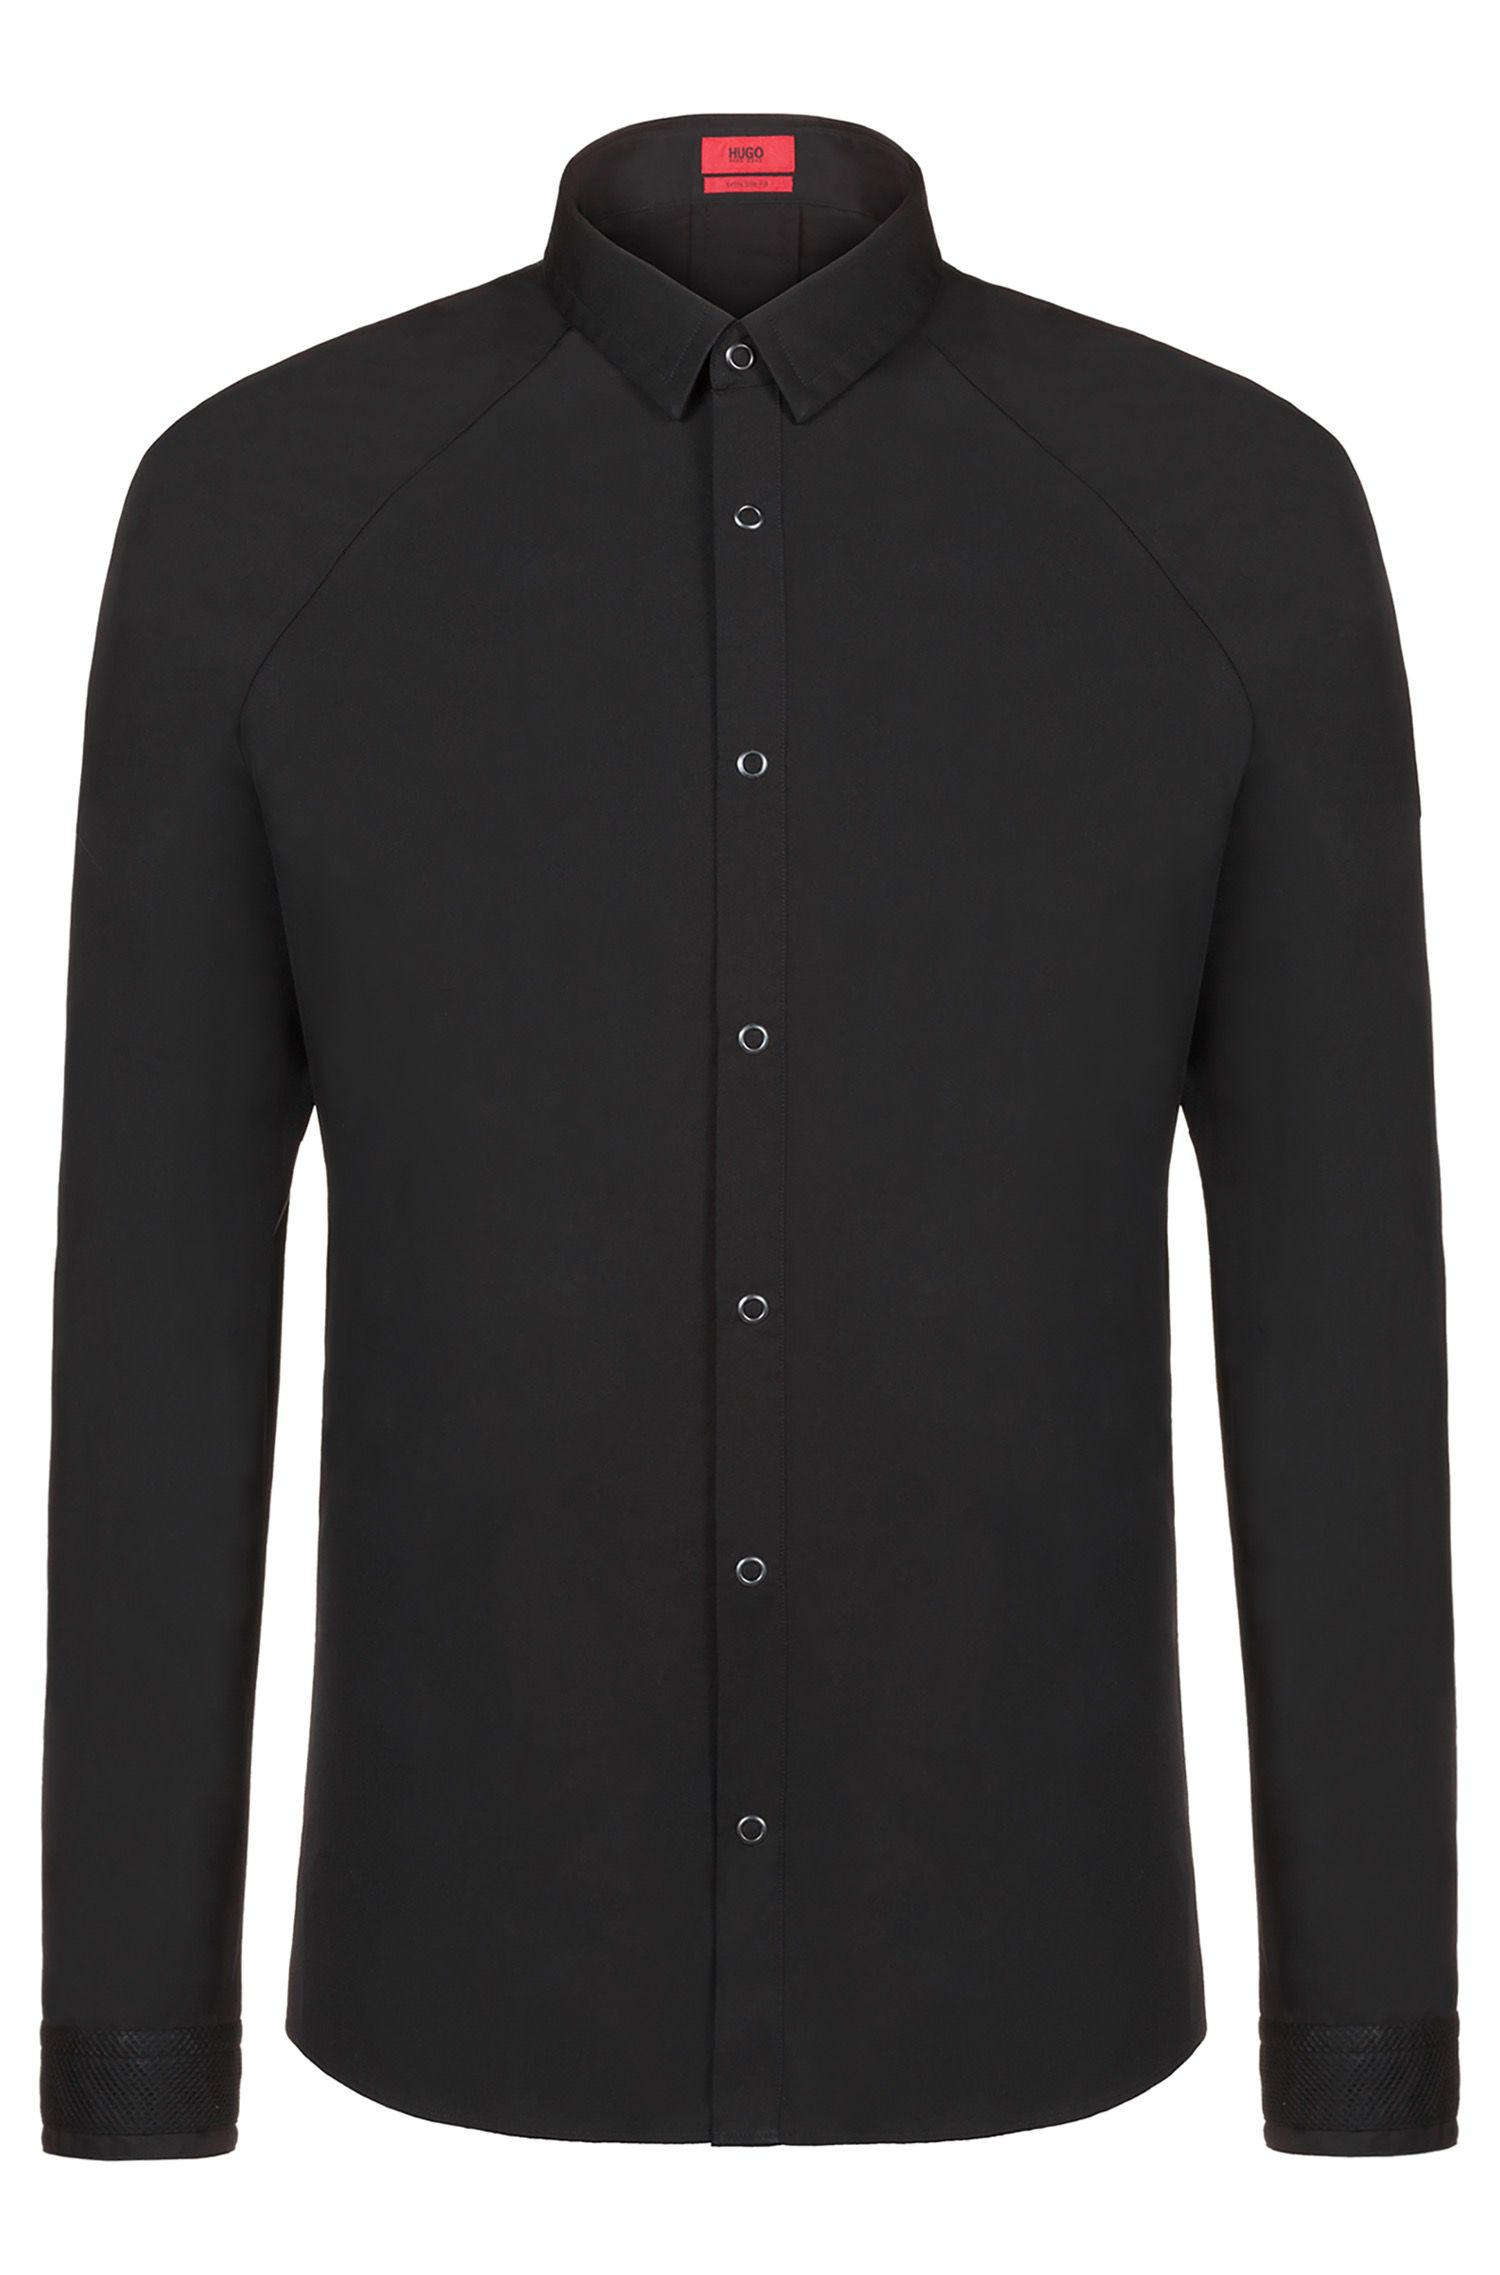 Extra-slim-fit shirt with raglan sleeves and rear logo, Black